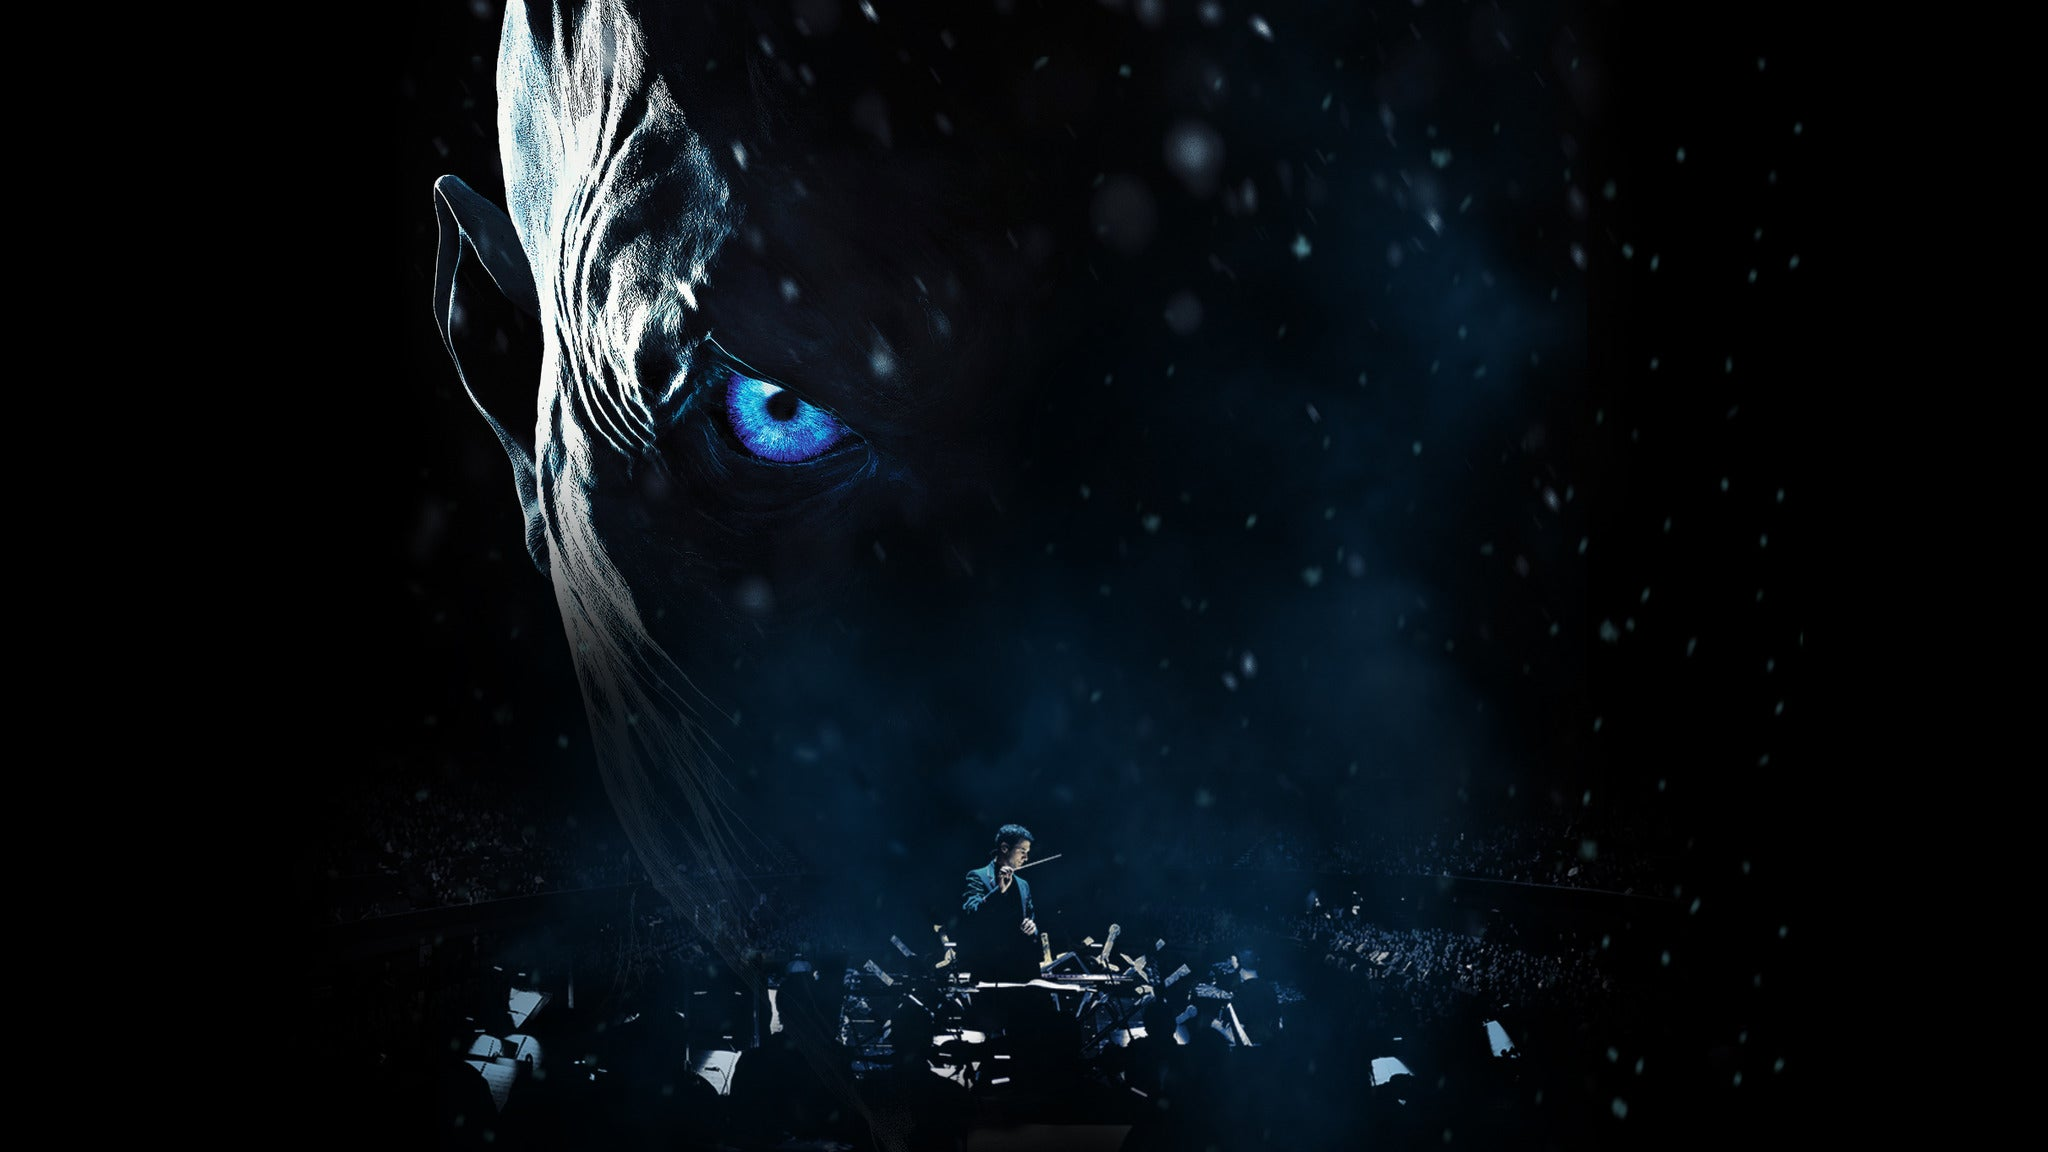 Game of Thrones Live Concert Experience at DCU Center